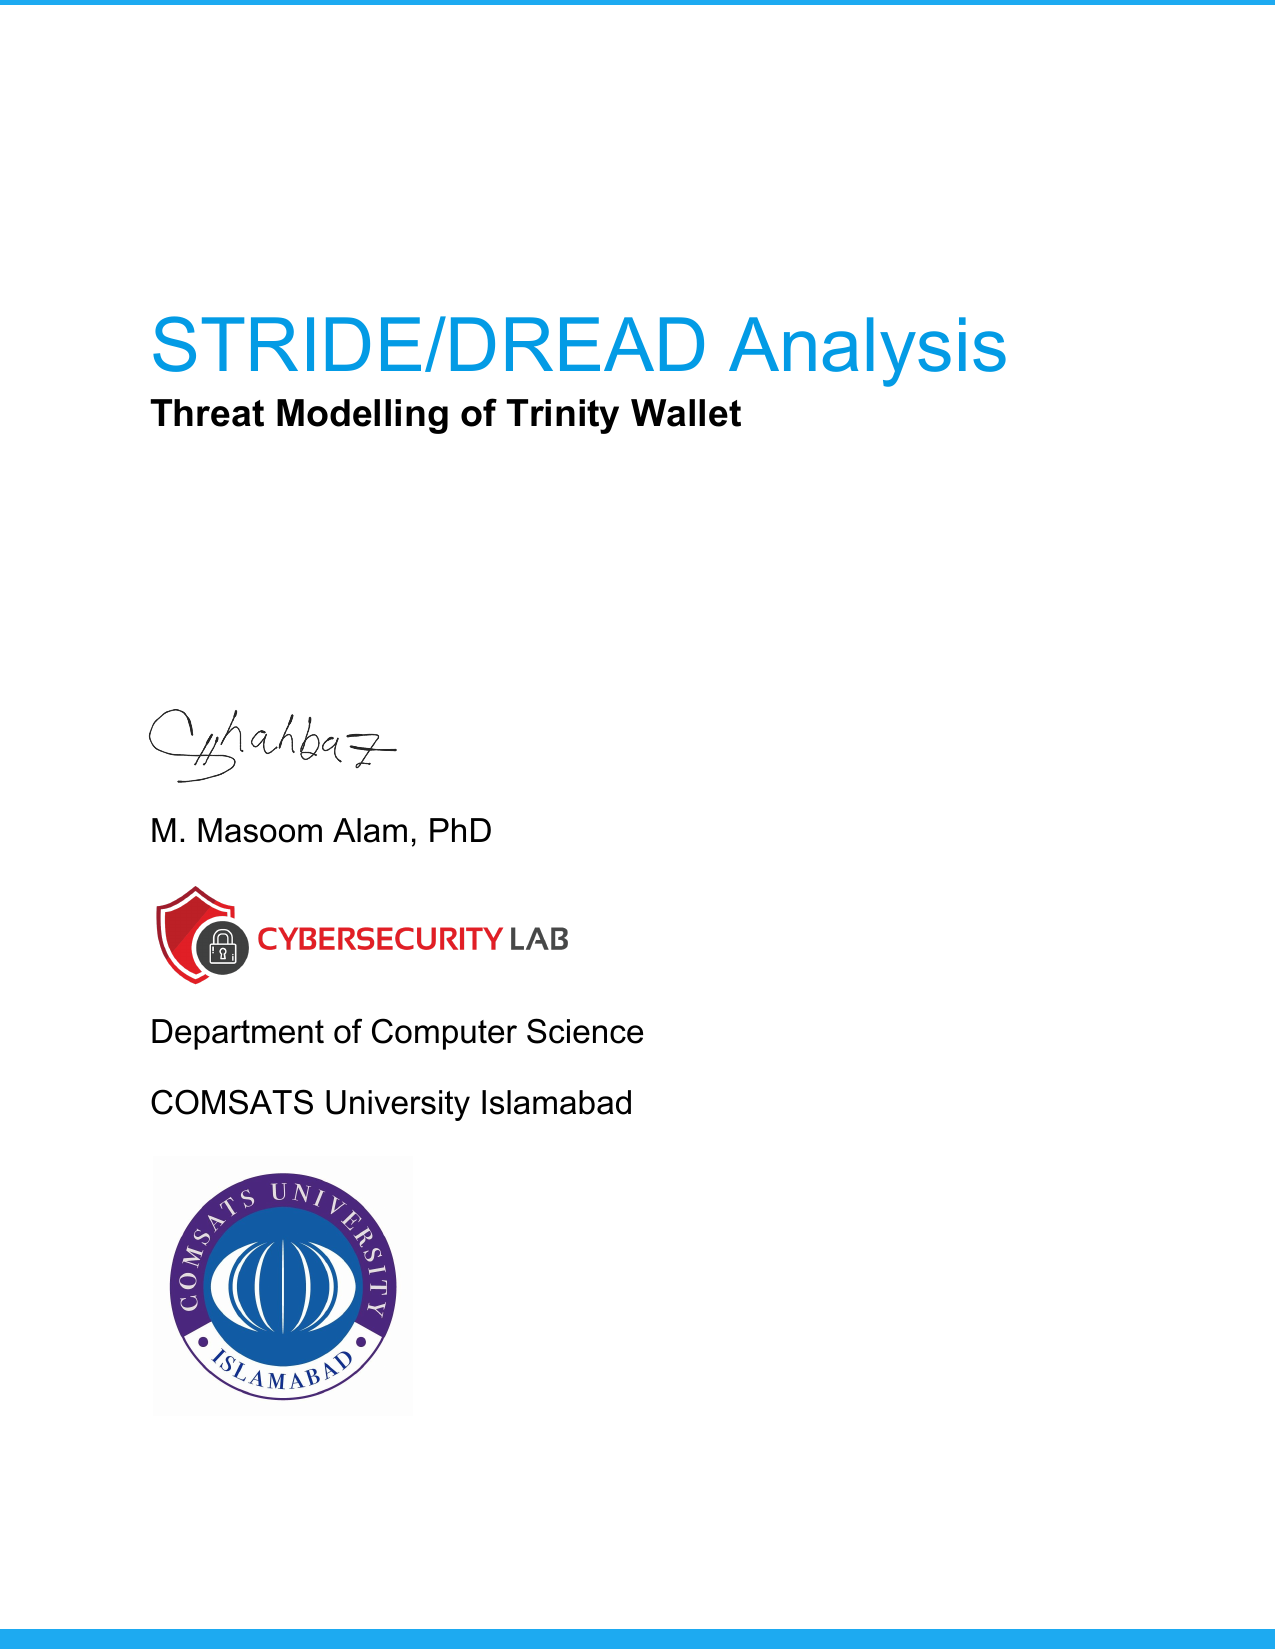 First page of the 'Threat Modeling Trinity Wallet' PDF